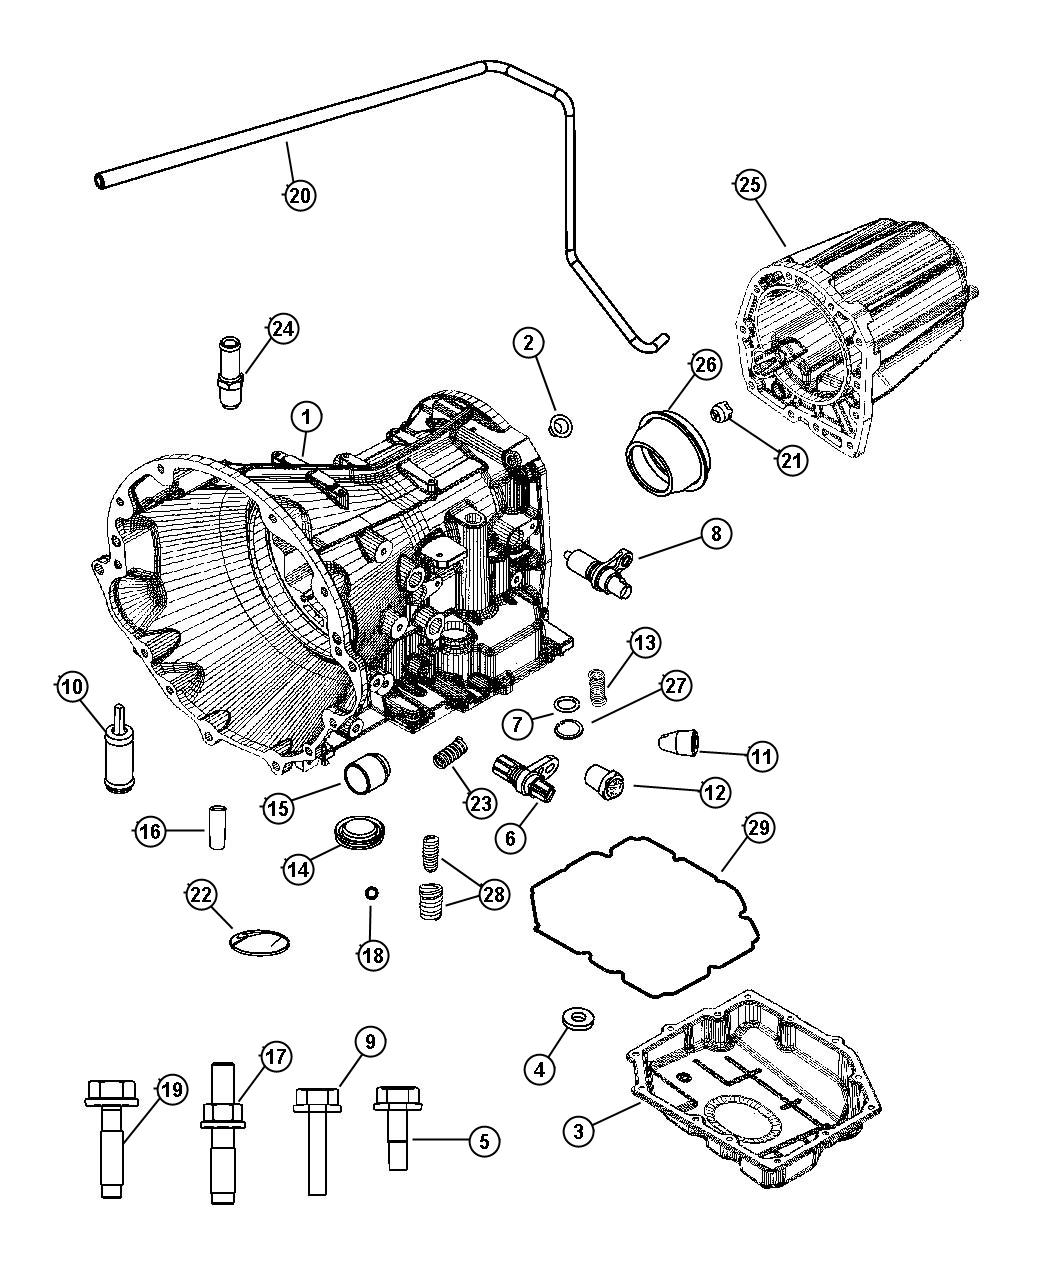 Dodge Transmission Parts Diagram, Dodge, Free Engine Image